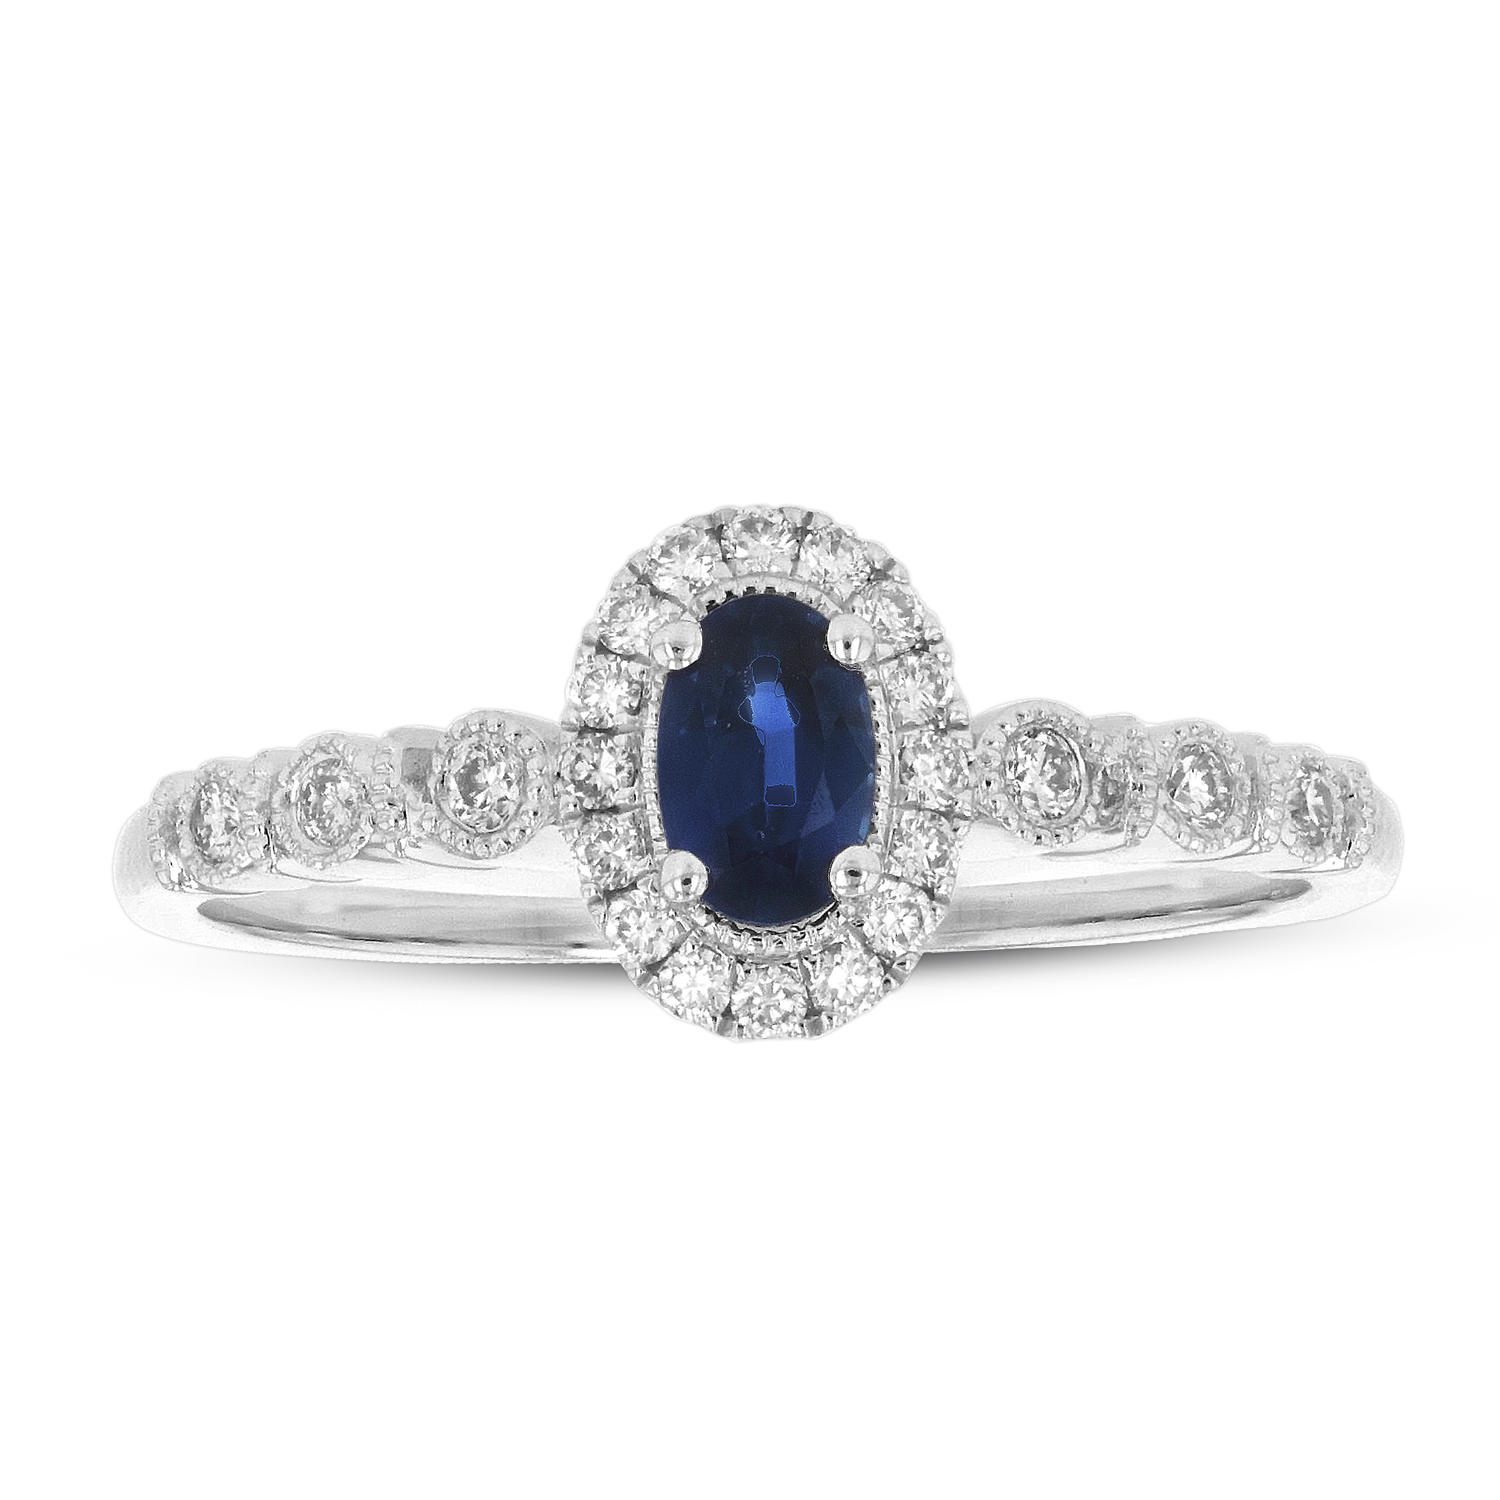 View 1/2ctw Diamond and Sapphire Ring in 14k White Gold